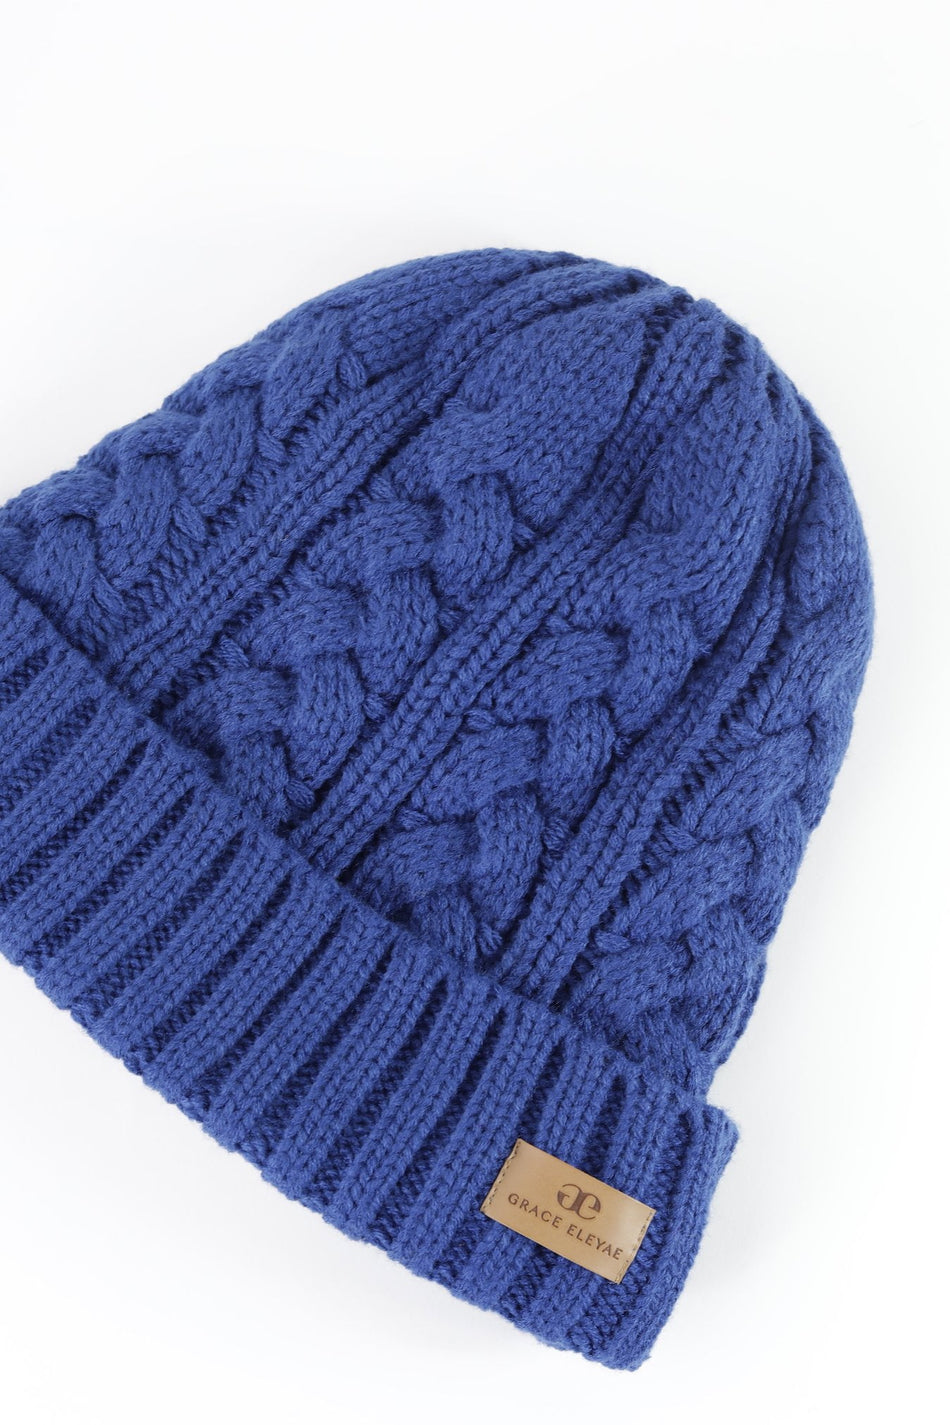 Royal Blue Foldover Warm Slap